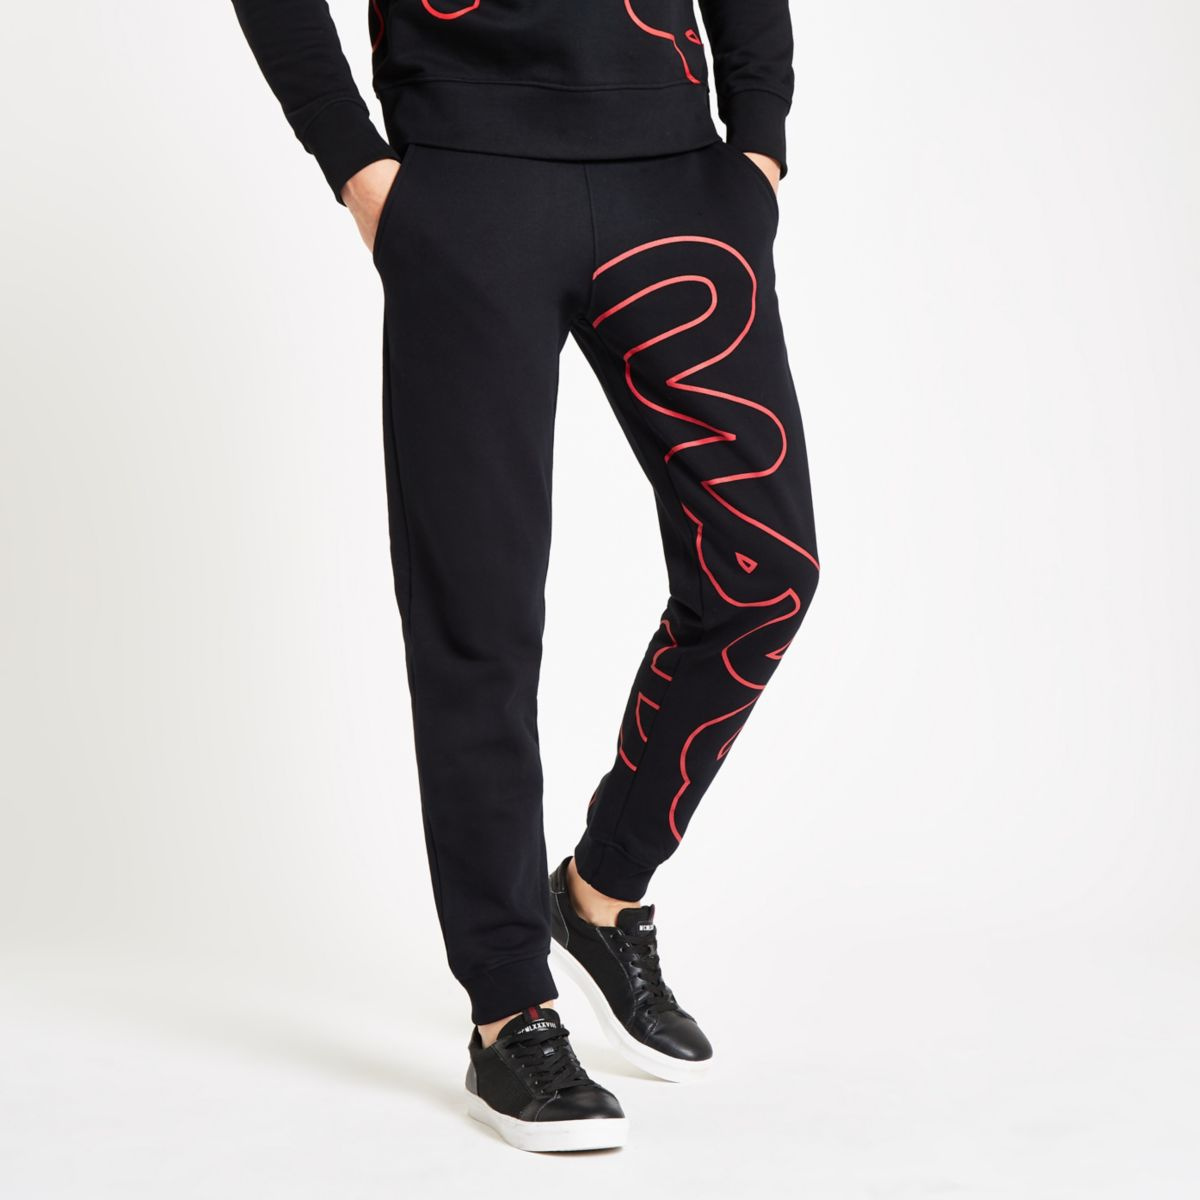 Money Clothing black big outline joggers